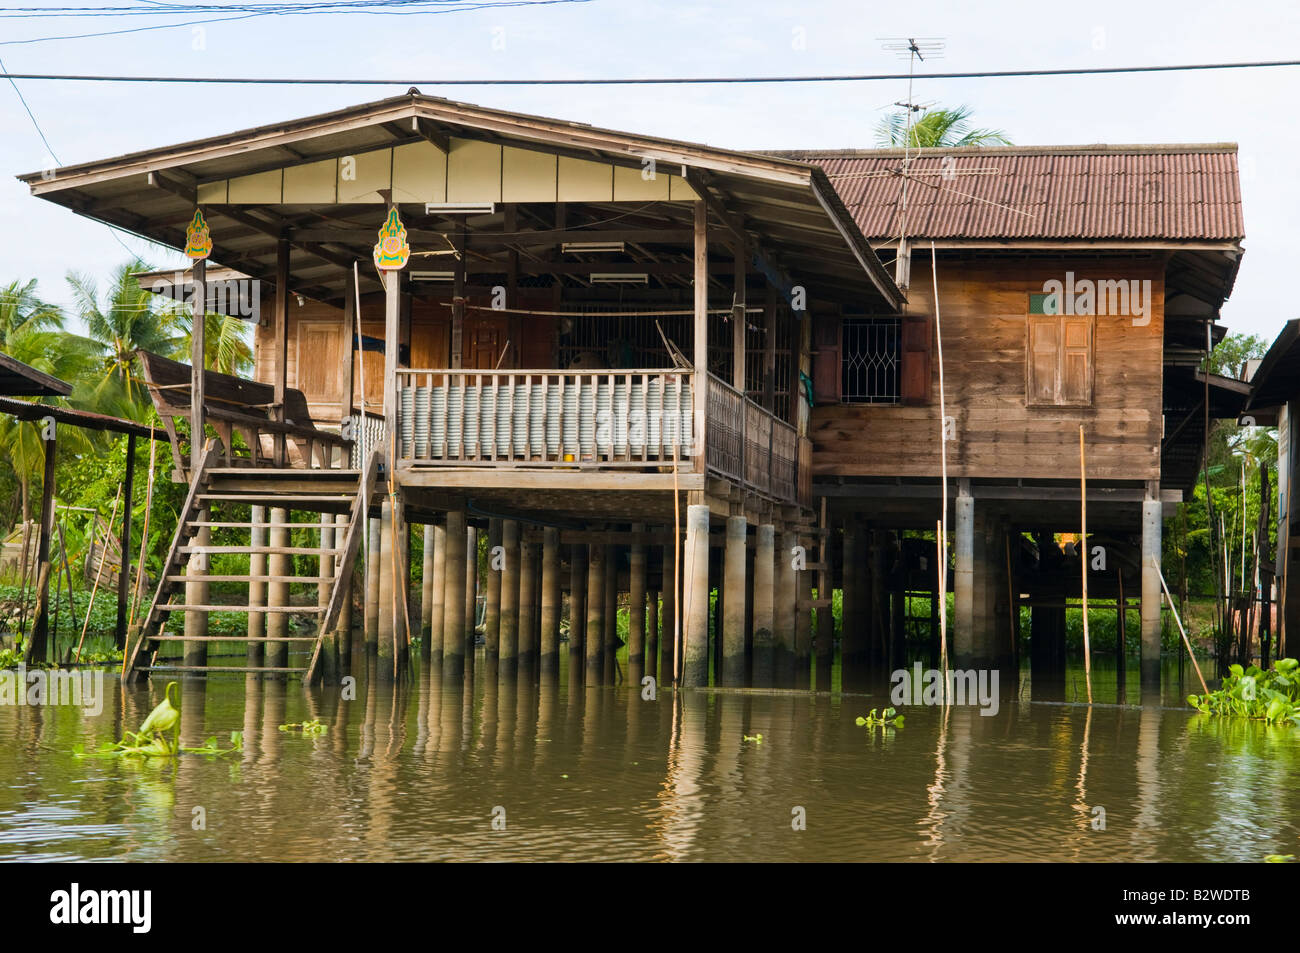 Traditional Wooden Thai House River Canal Home   Stock Image